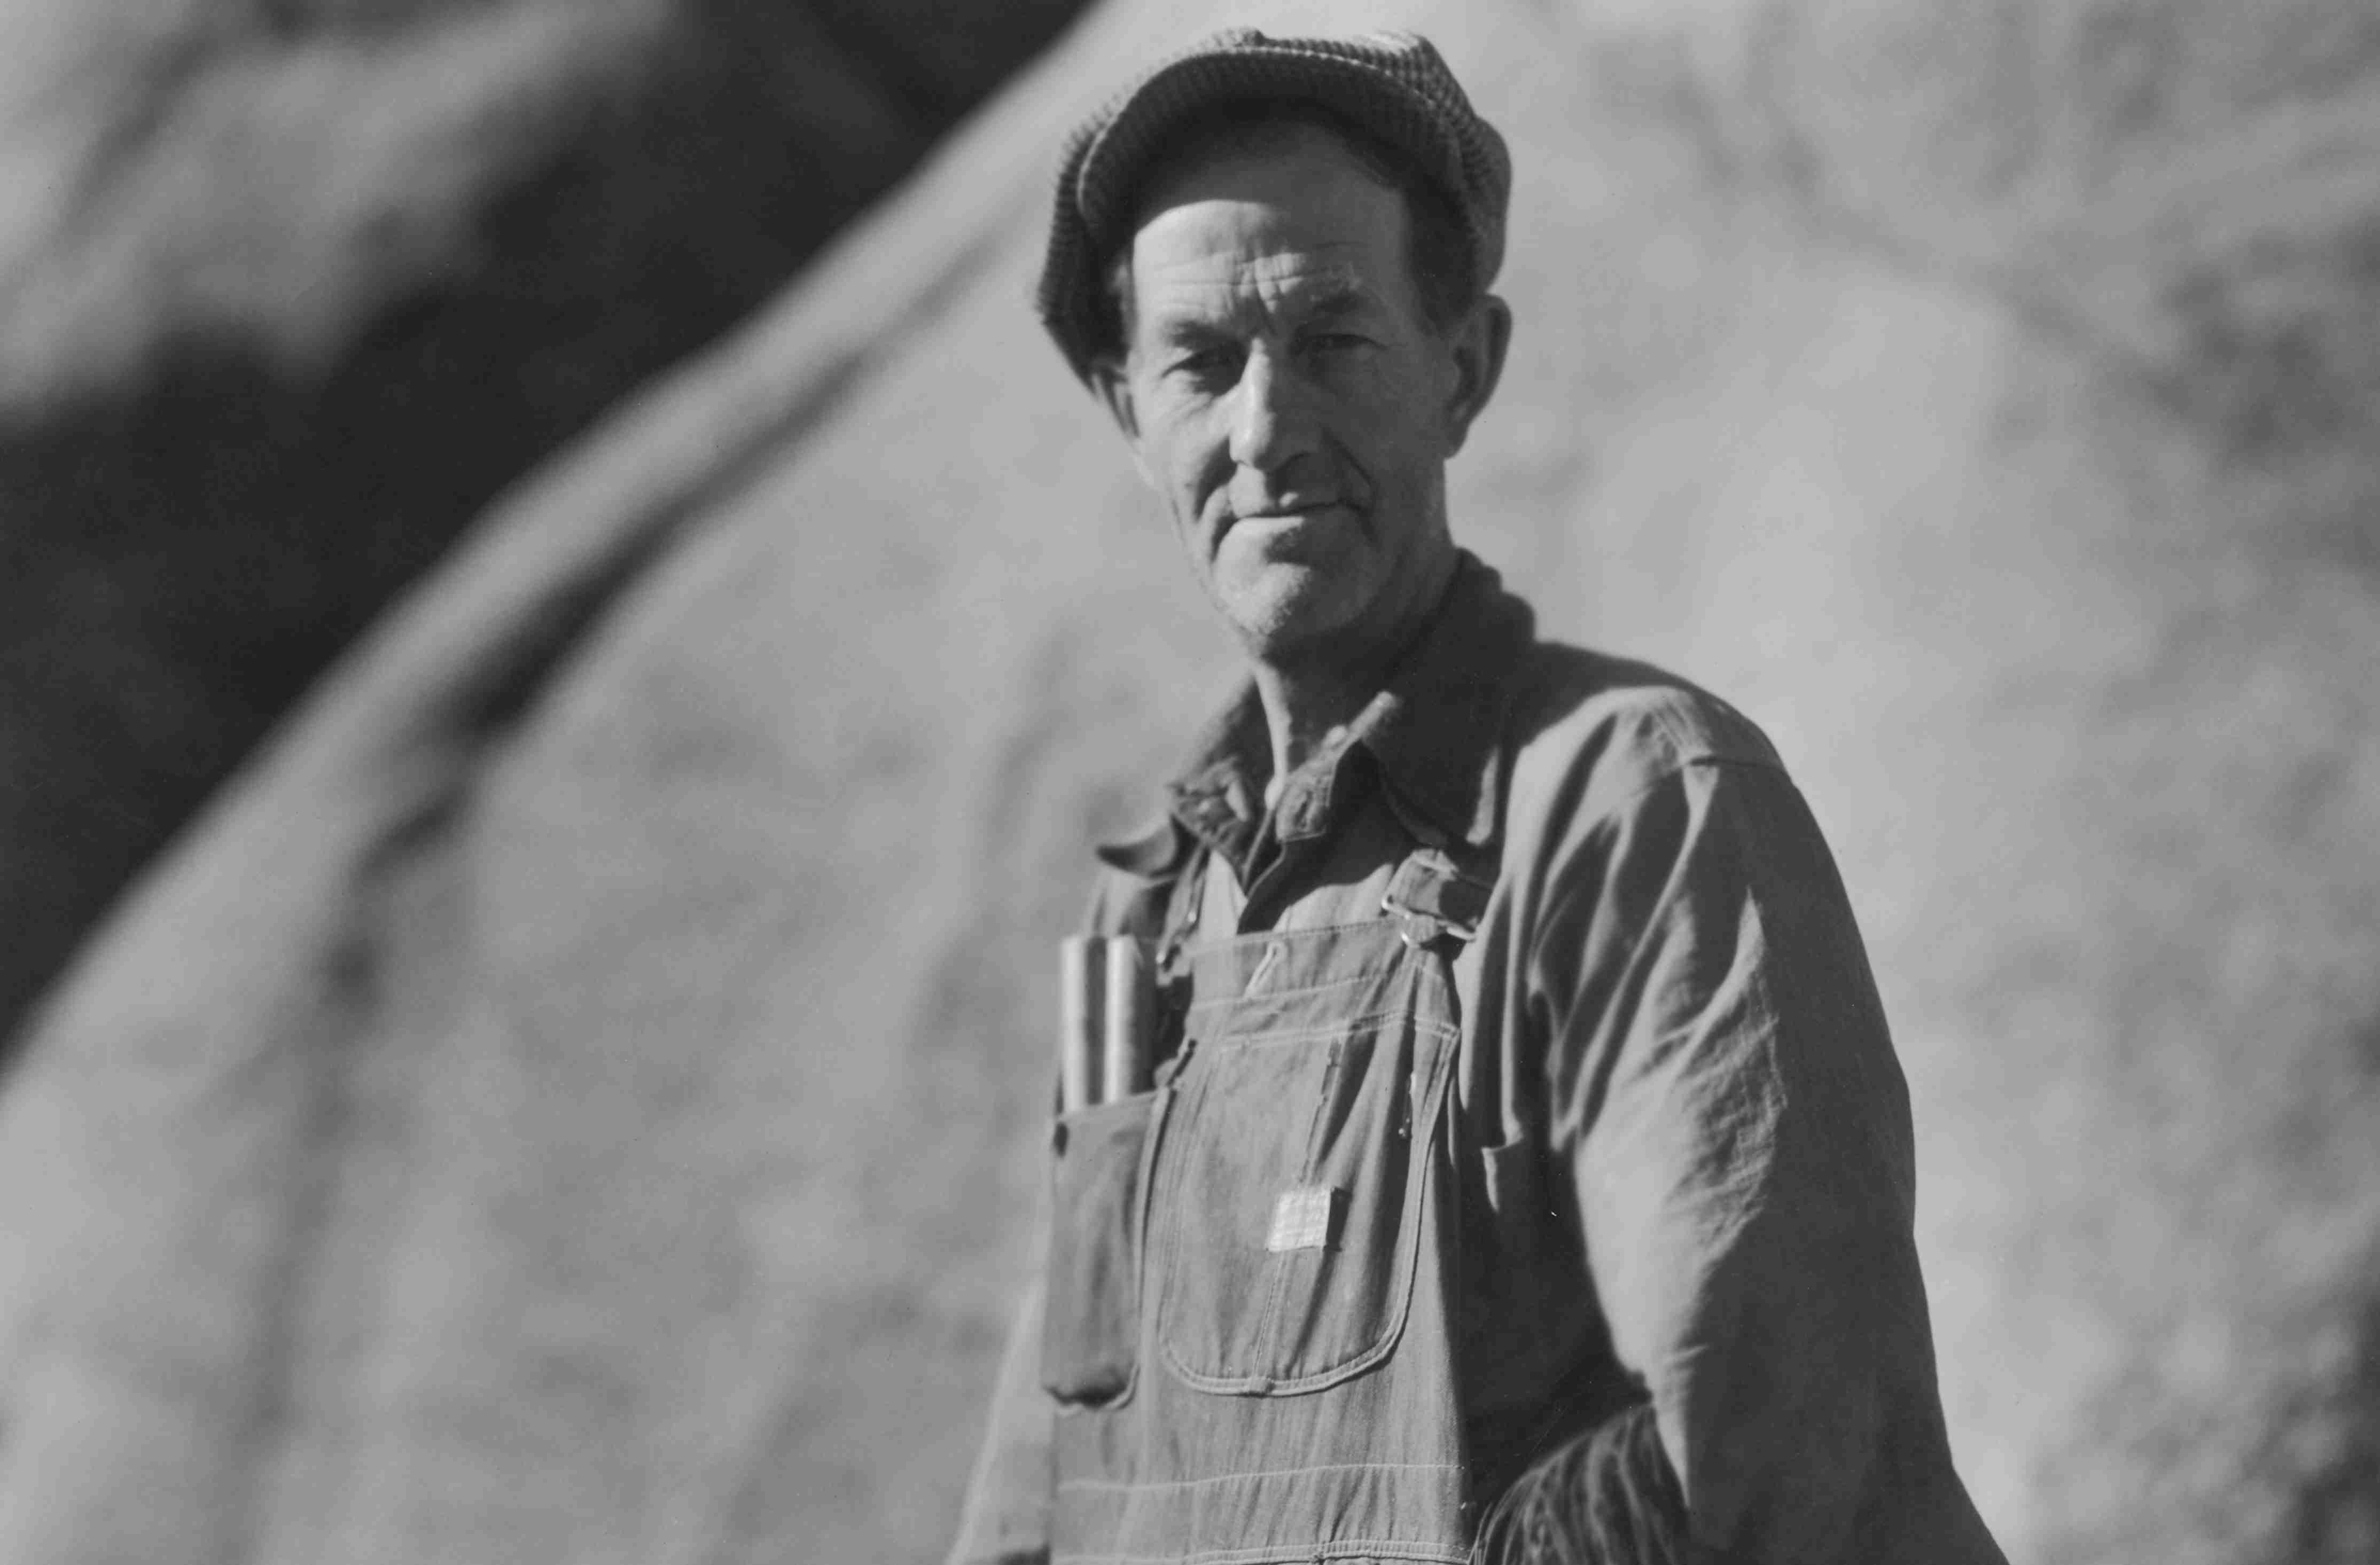 The 'powder monkey' of the Mount Rushmore National Memorial